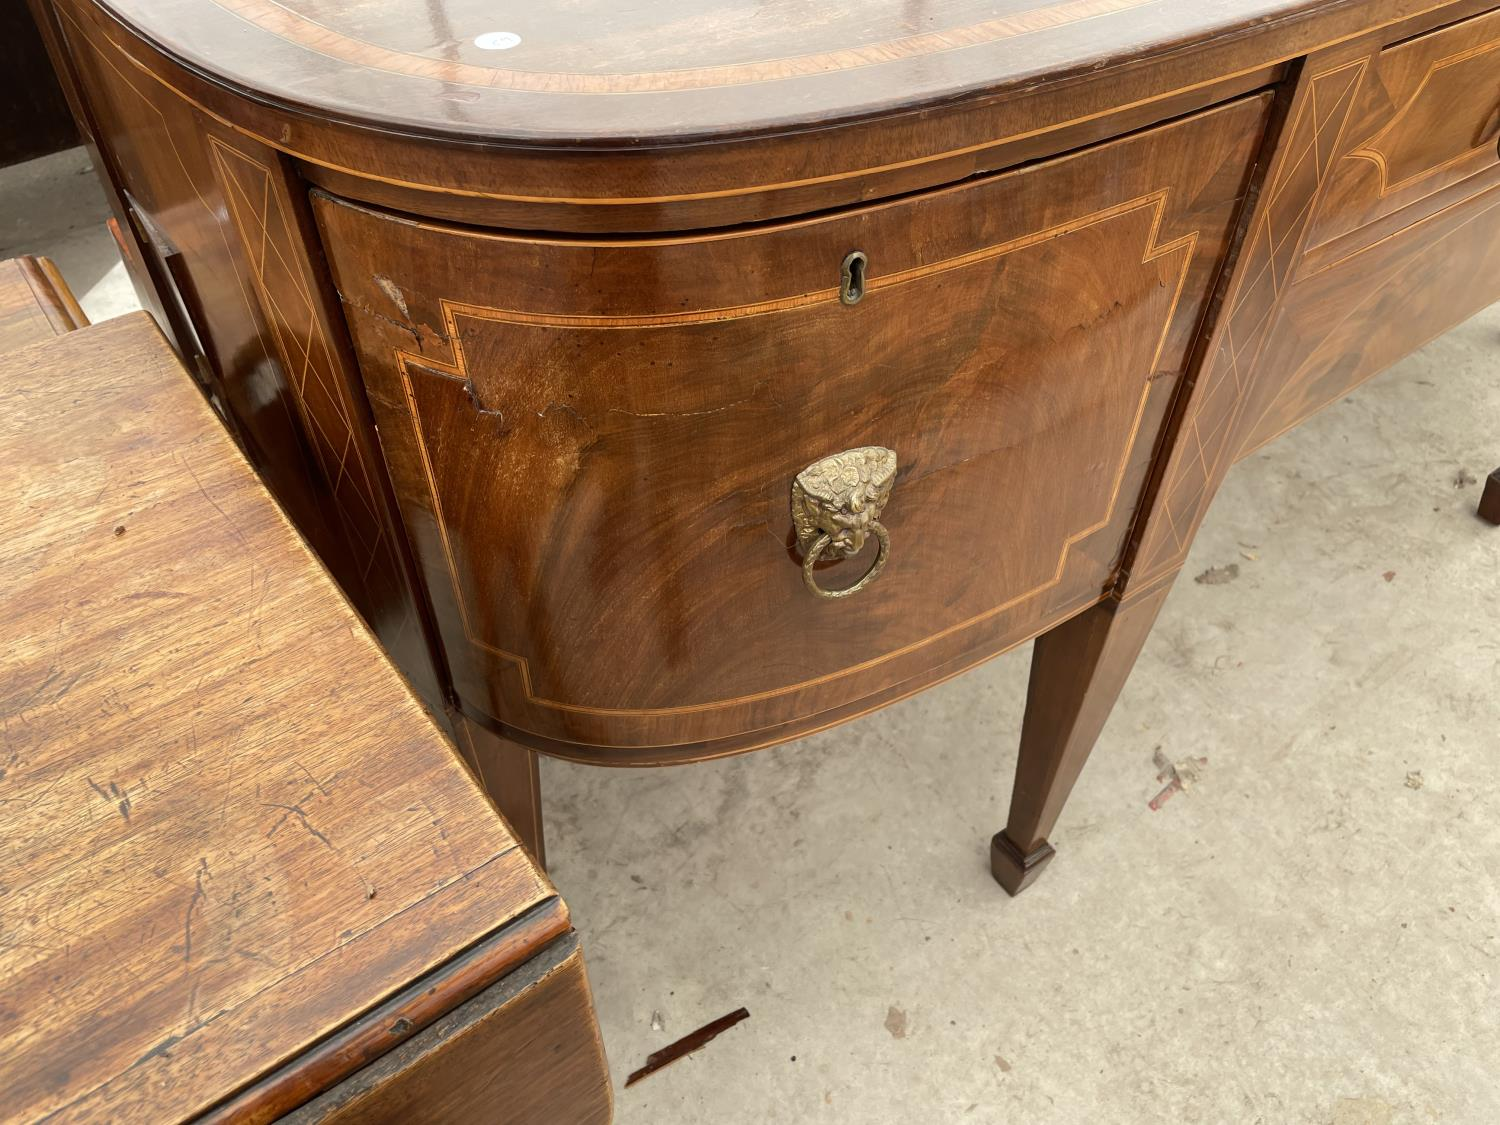 """A 19TH CENTURY MAHOGANY BOWFRONTED SIDEBOARD ON TAPERED LEGS, WITH SPADE FEET, 78"""" - Image 4 of 10"""